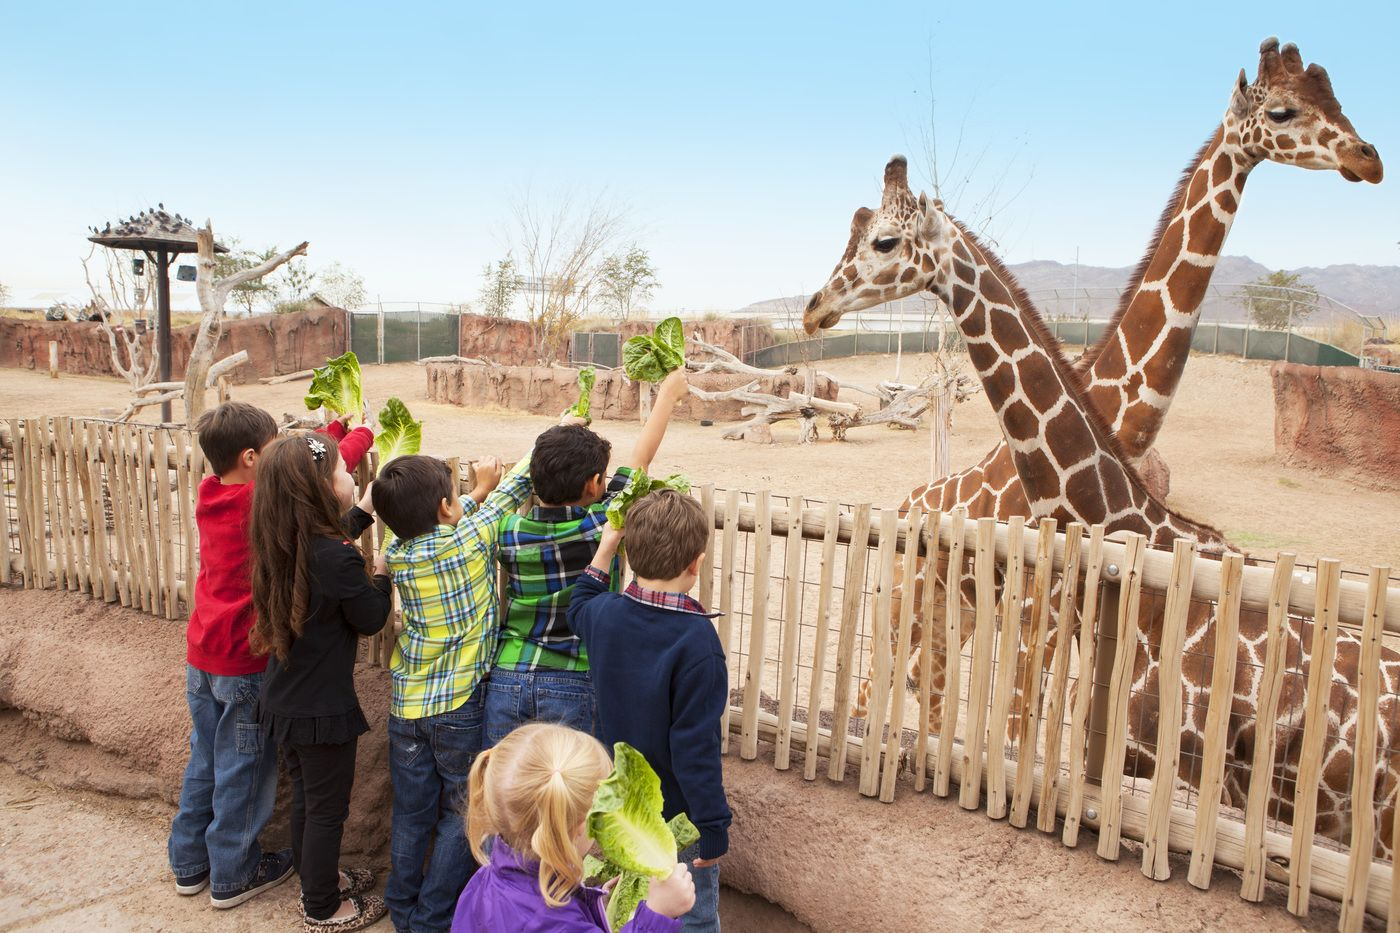 7 Top Family-Friendly Things to Do in El Paso